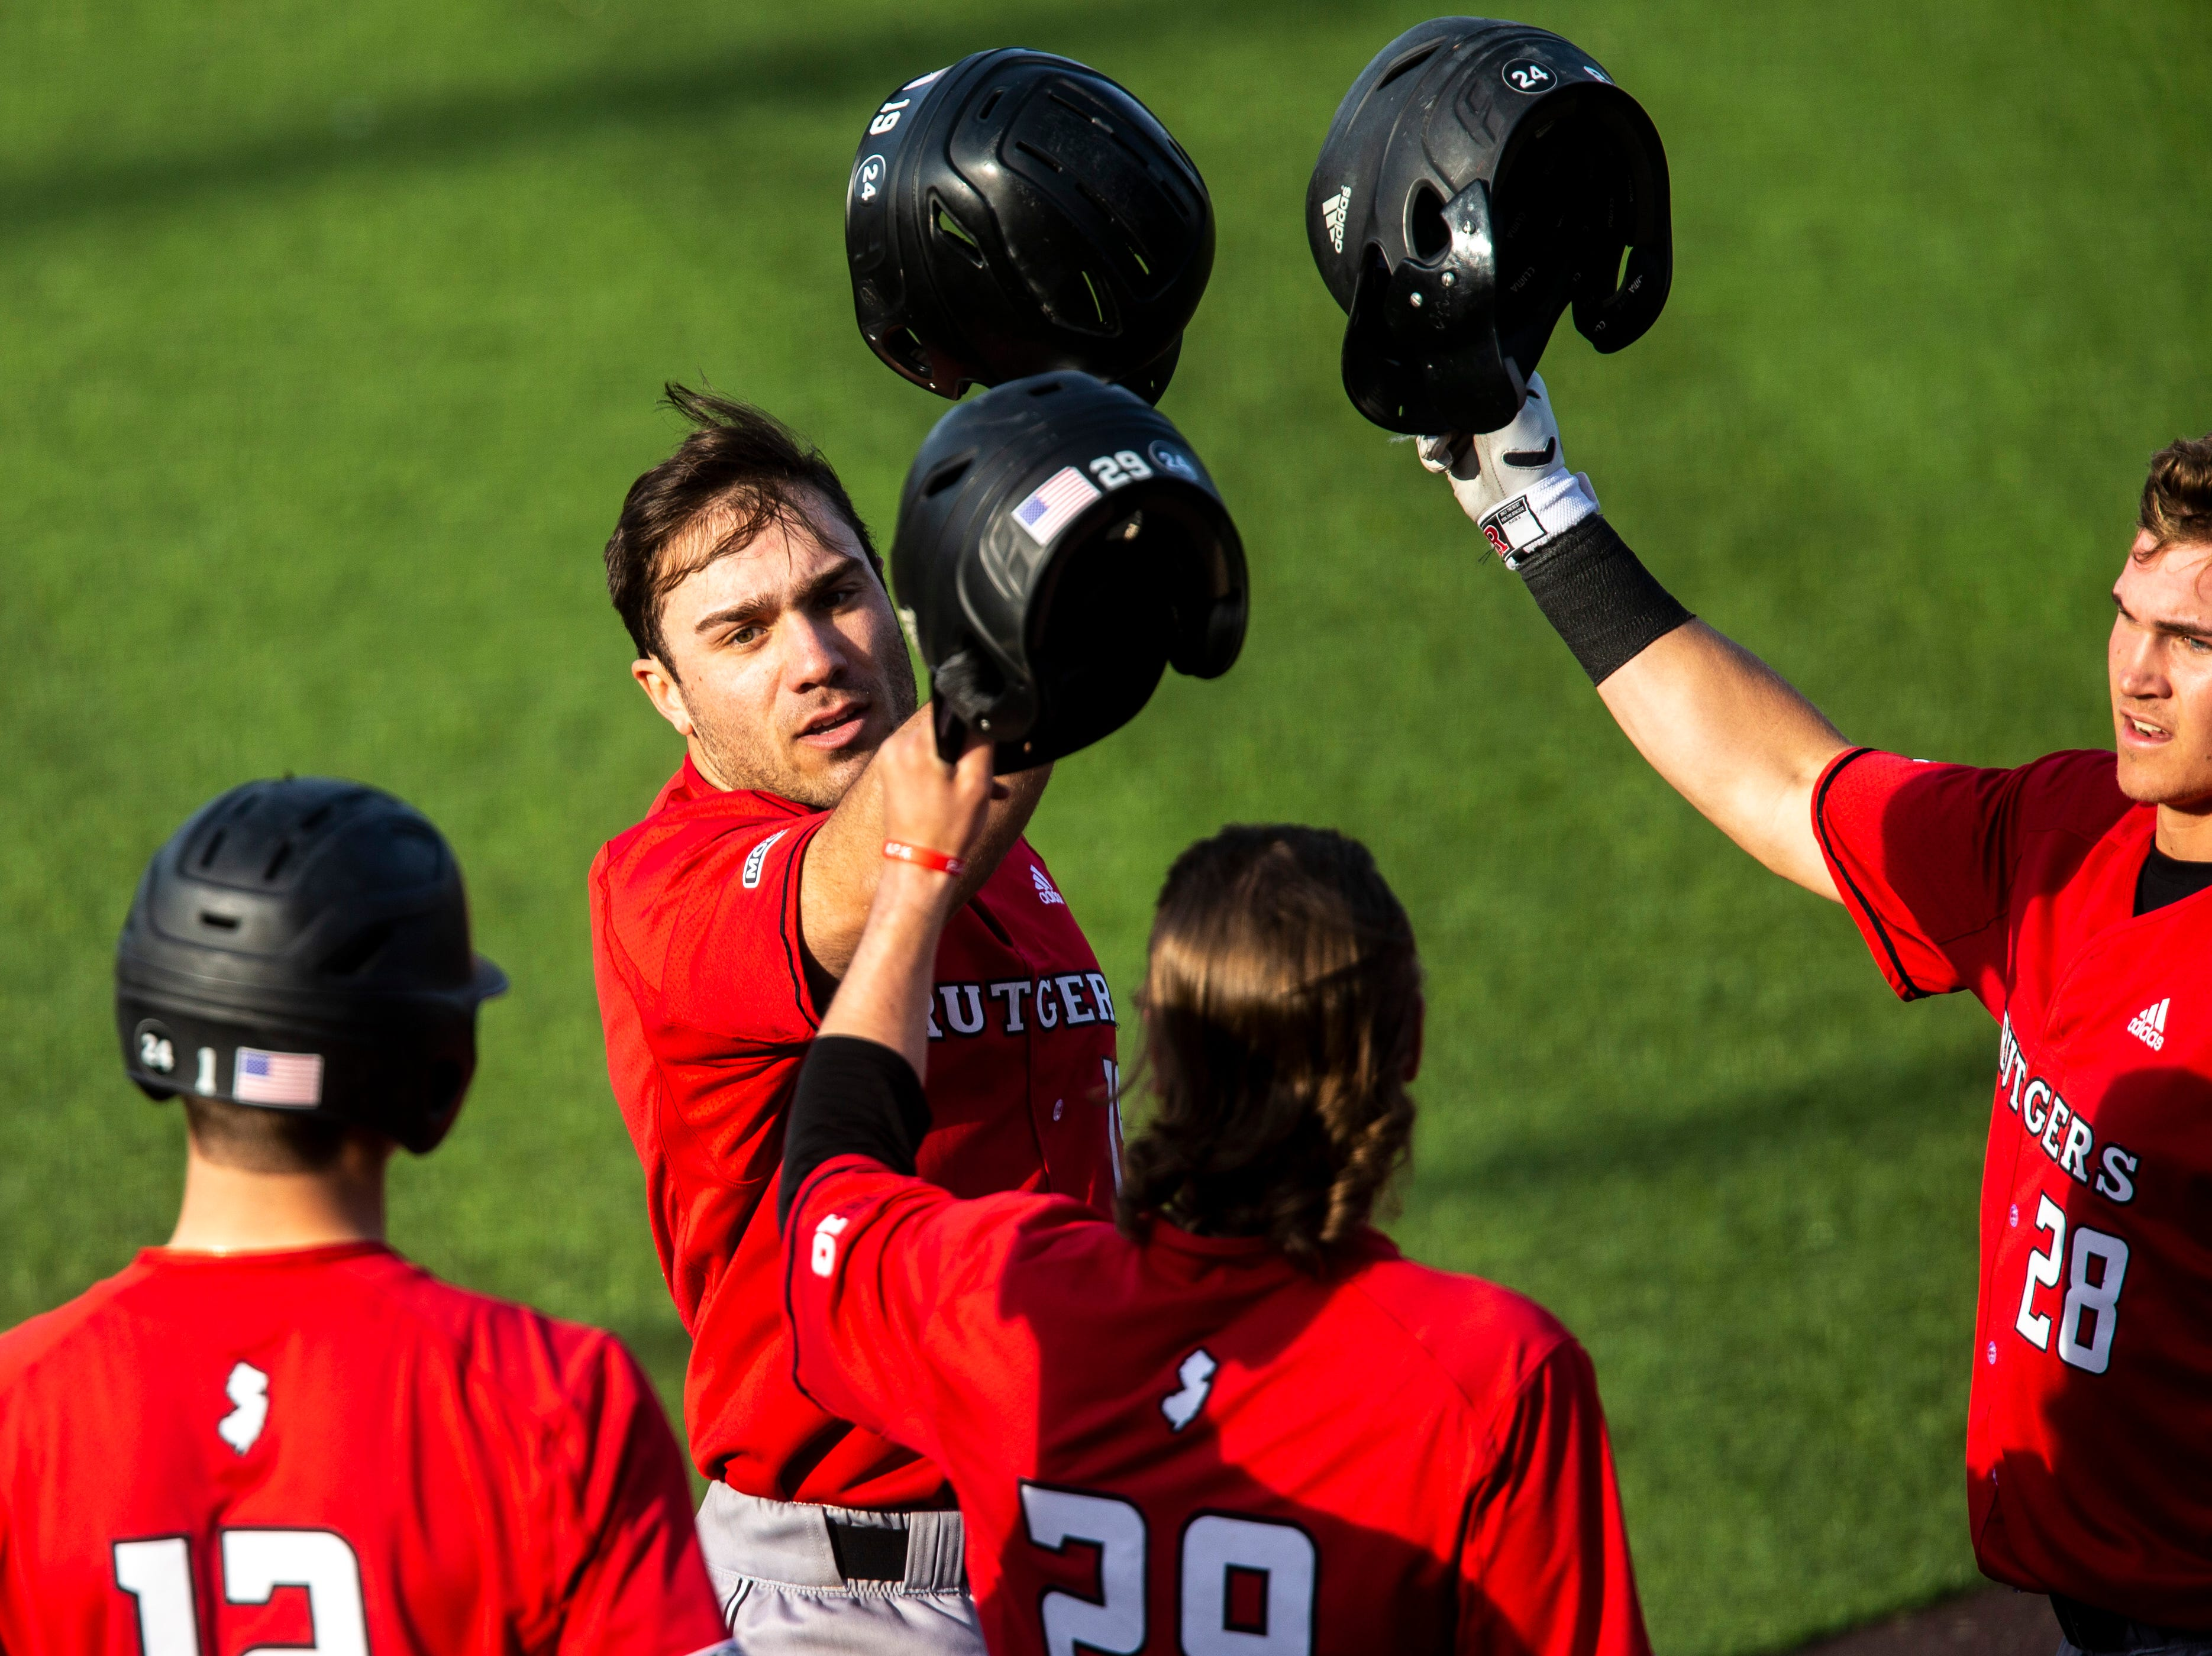 Rutgers' Carmen Sclafani celebrates with teammates after scoring a home run during a NCAA Big Ten Conference baseball game on Saturday, April 6, 2019, at Duane Banks Field in Iowa City, Iowa.